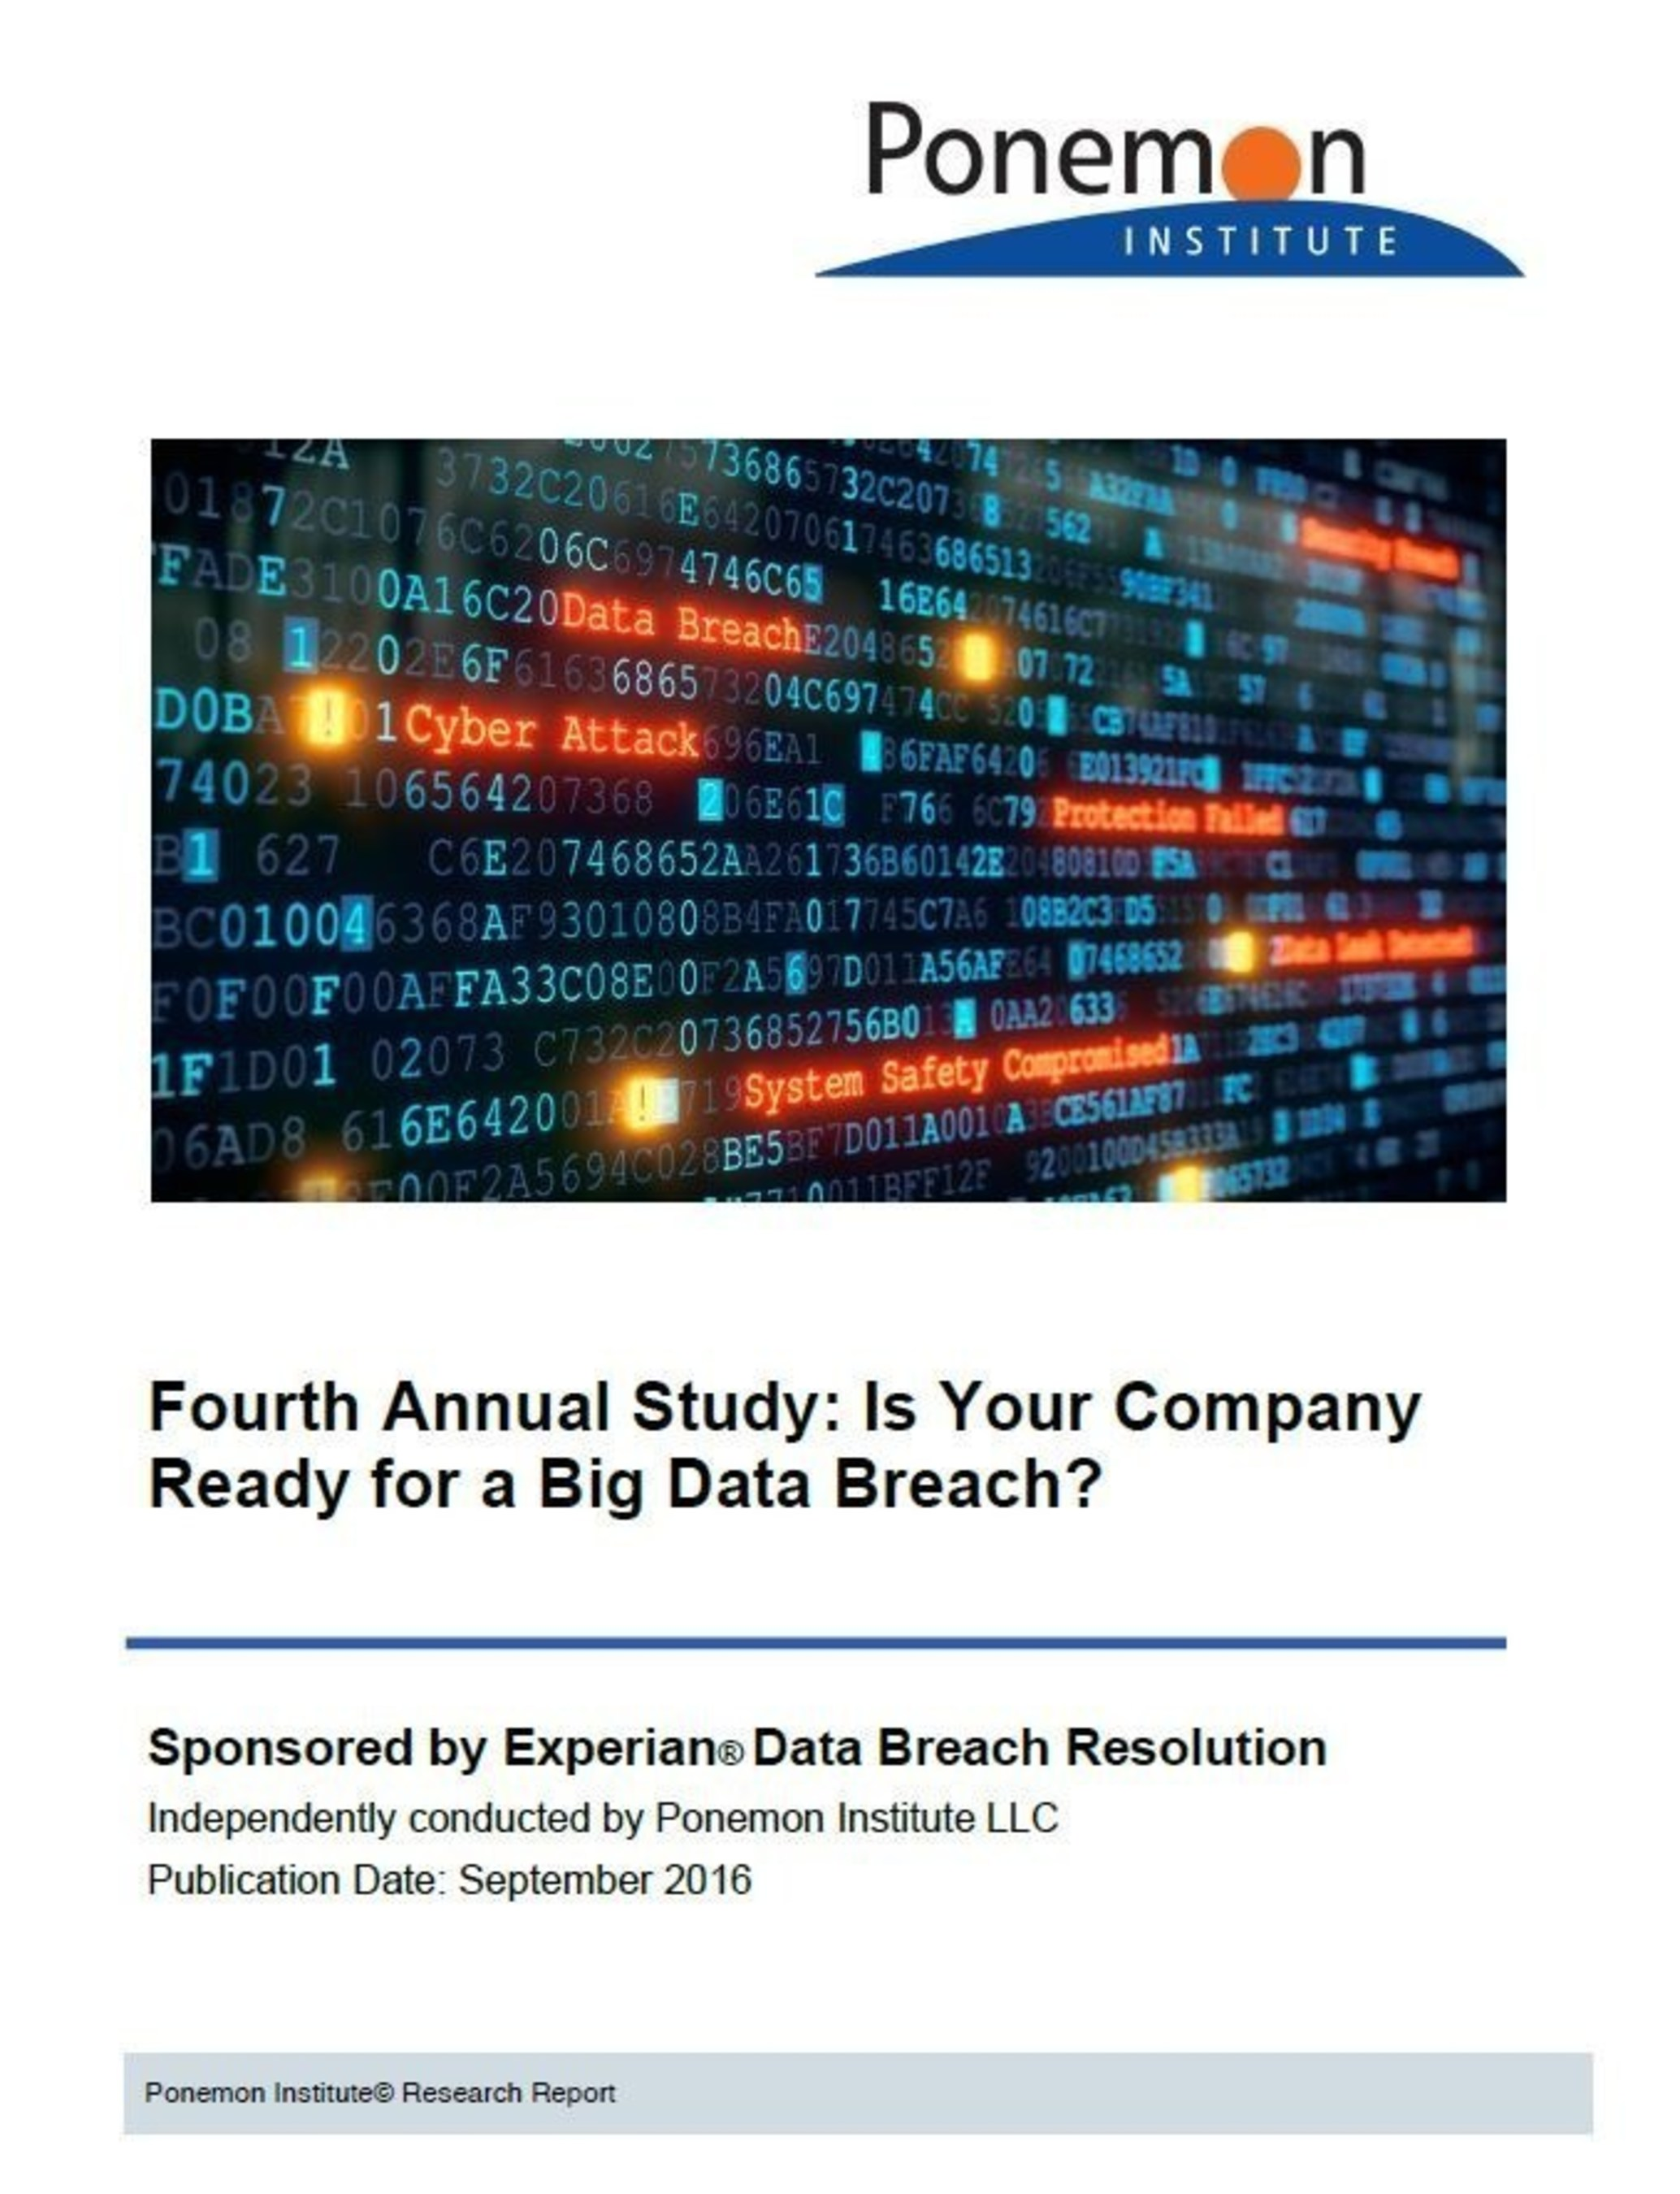 Fourth Annual Preparedness Study from Experian Data Breach Resolution: Is your company ready for a big data breach?